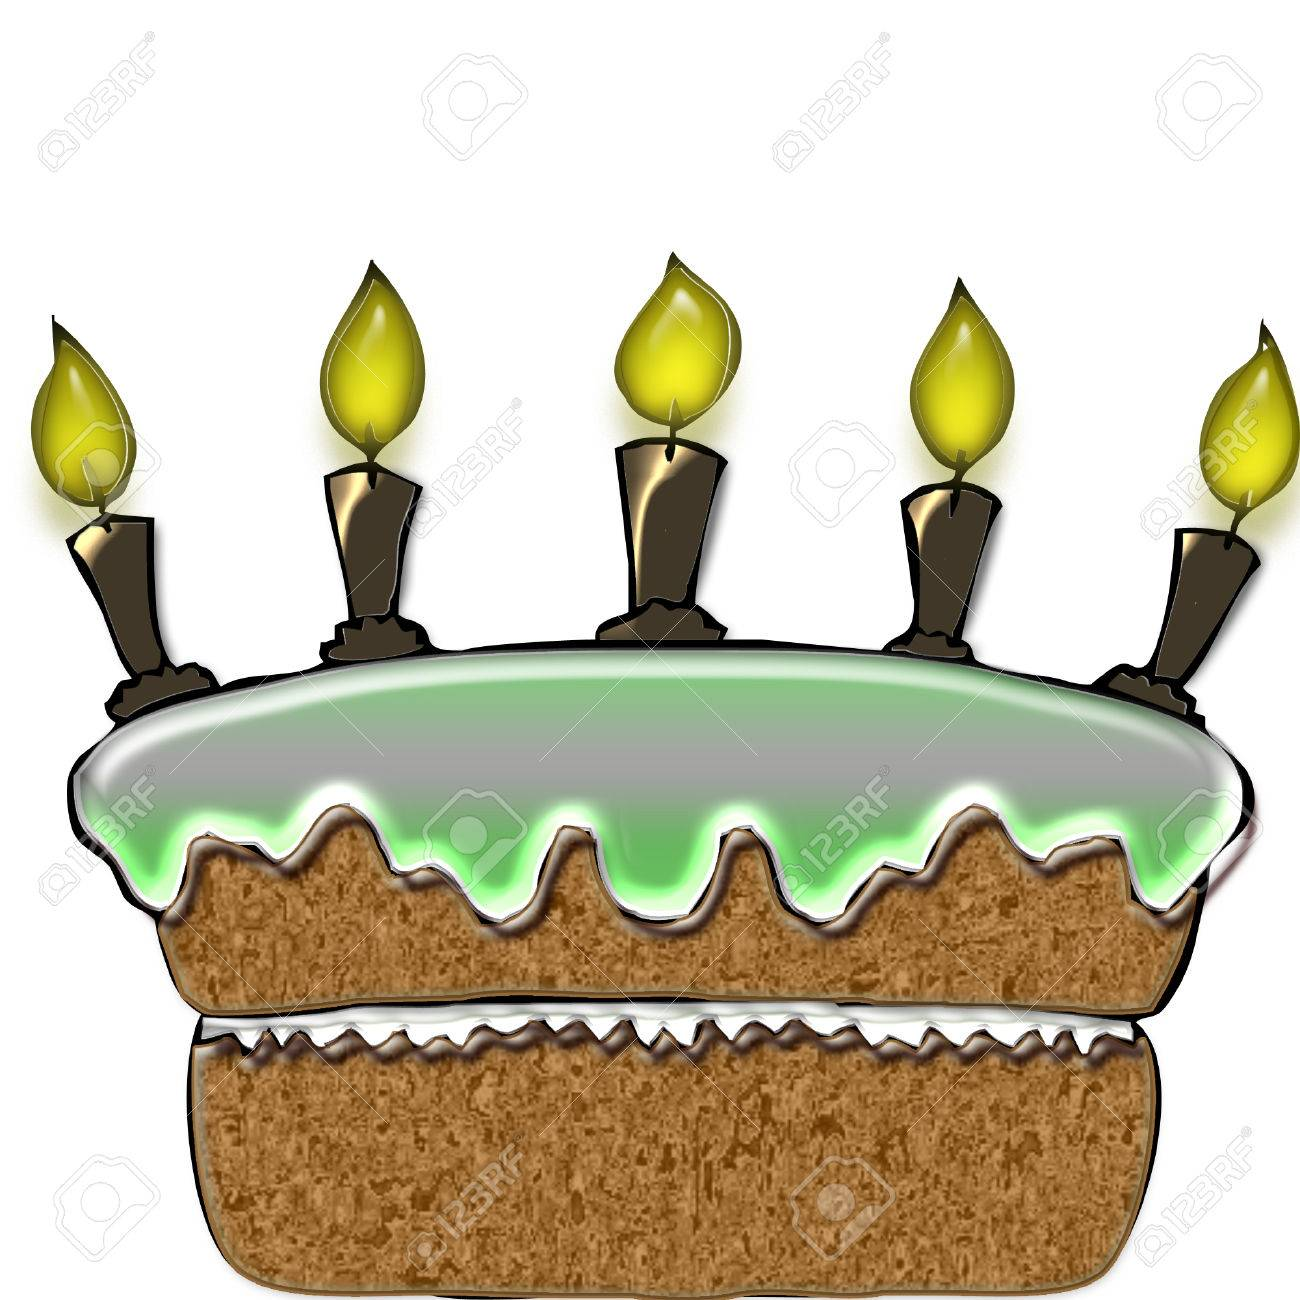 A Big Birthday Cake With Pretty Icing And Candles Stock Vector